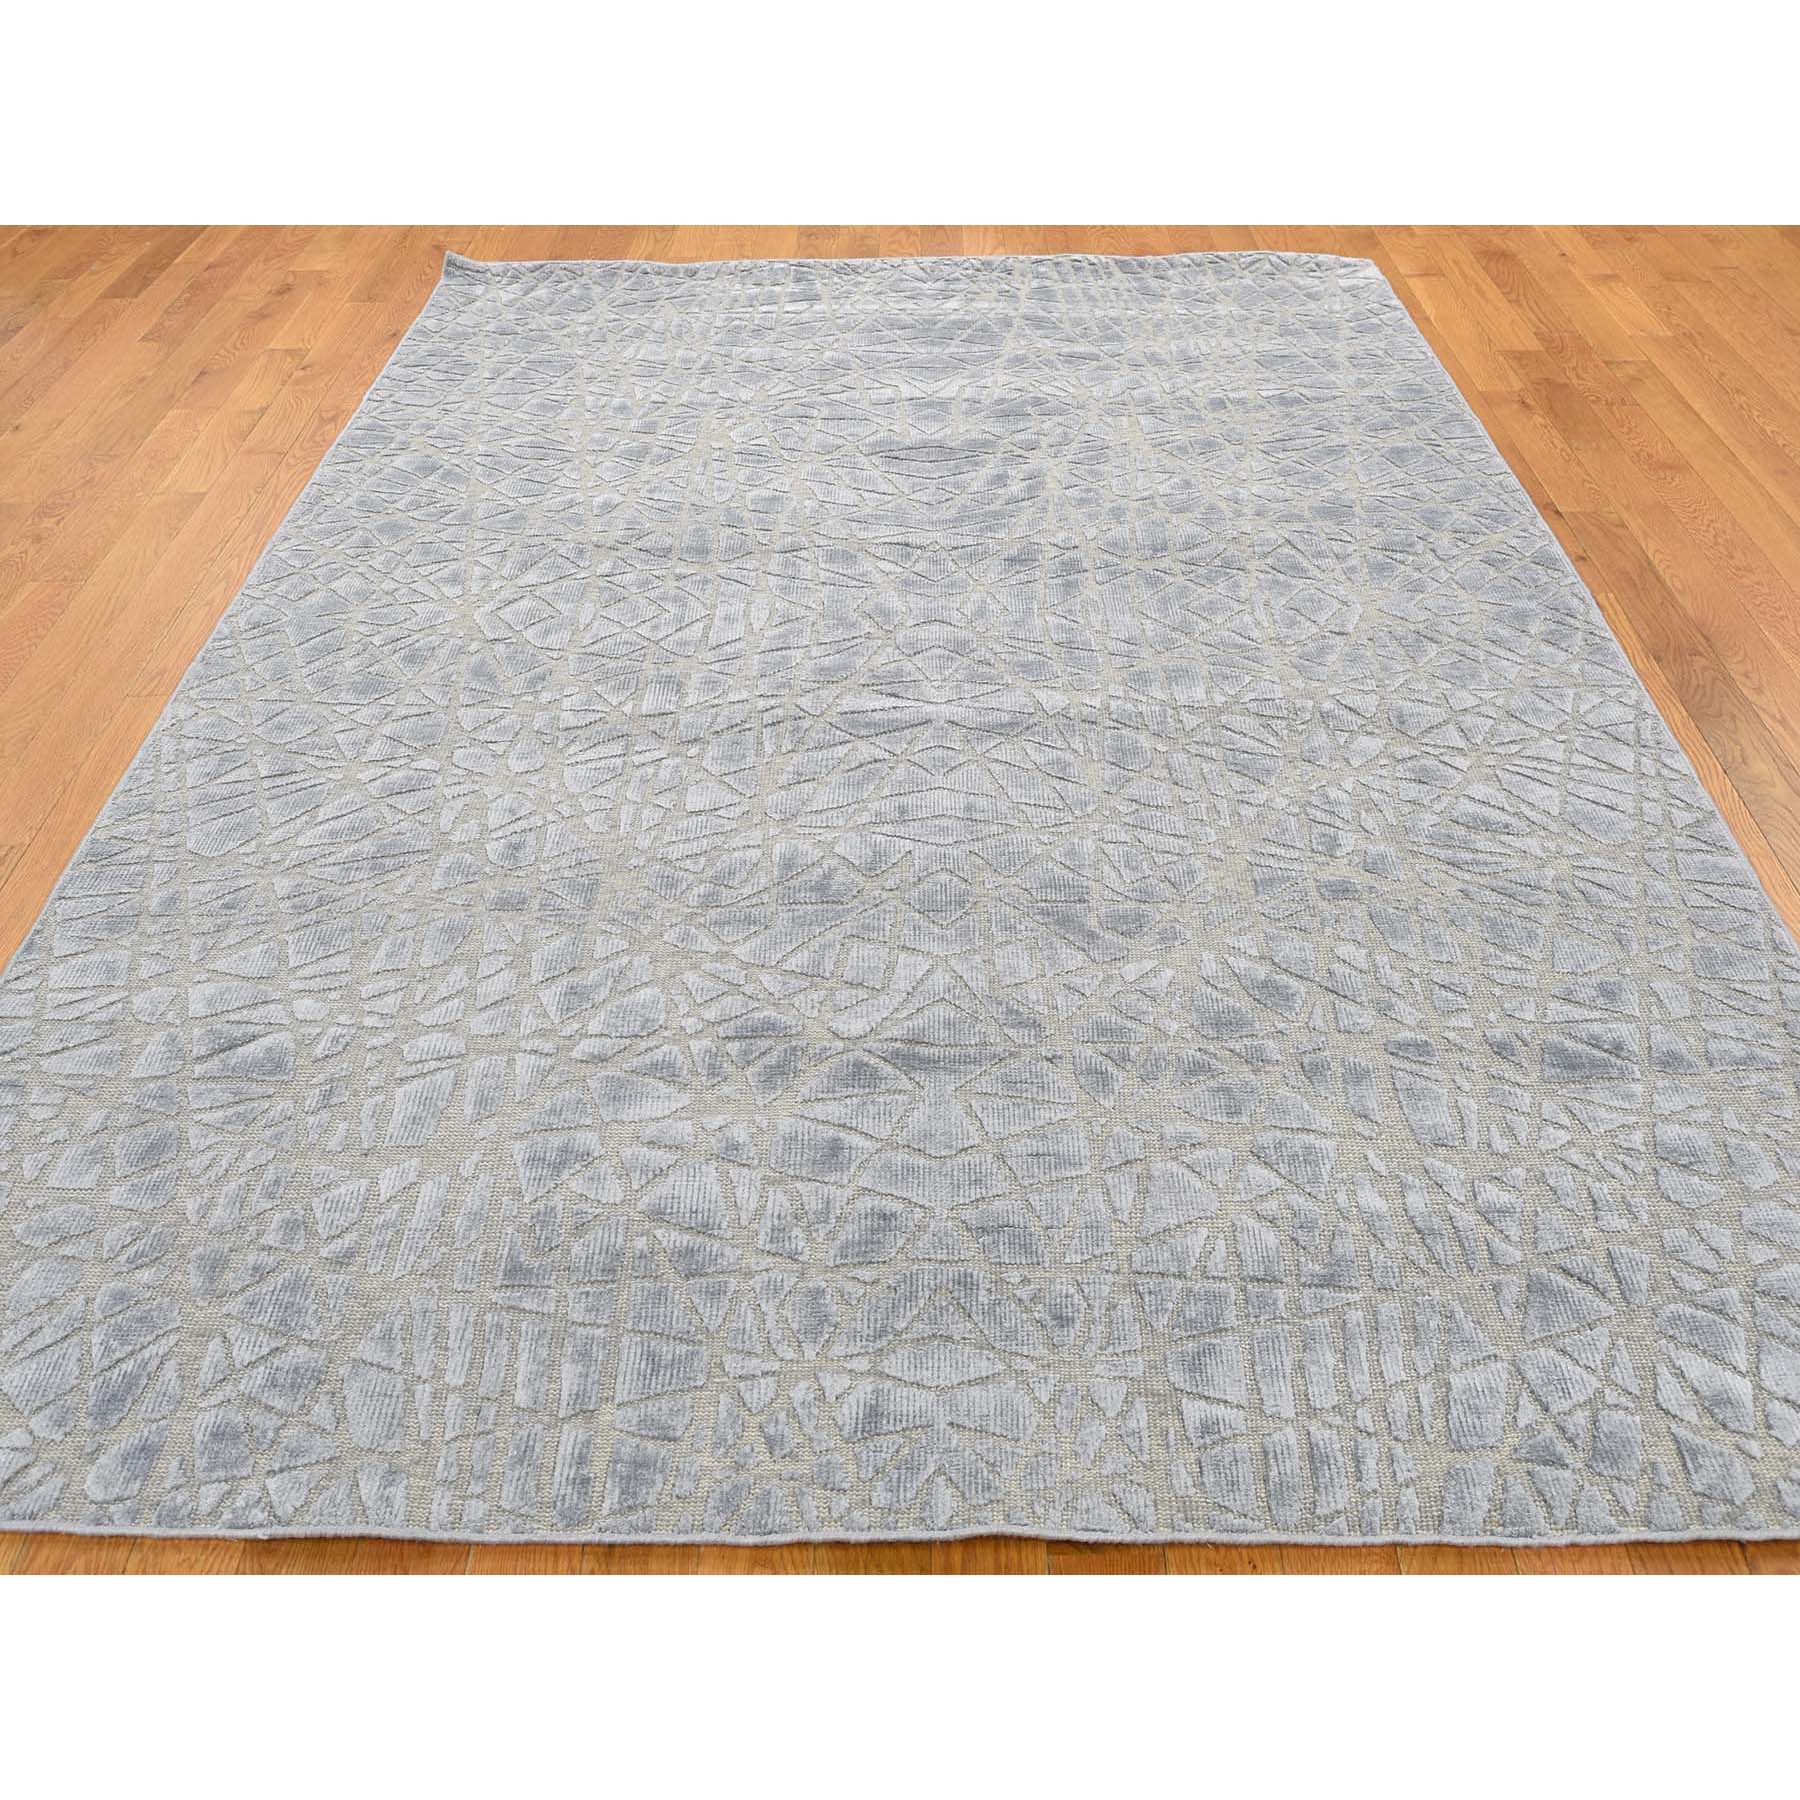 6-x8-10  Flat Pile with Raised Silk Hand Knotted Tone on Tone Oriental Rug